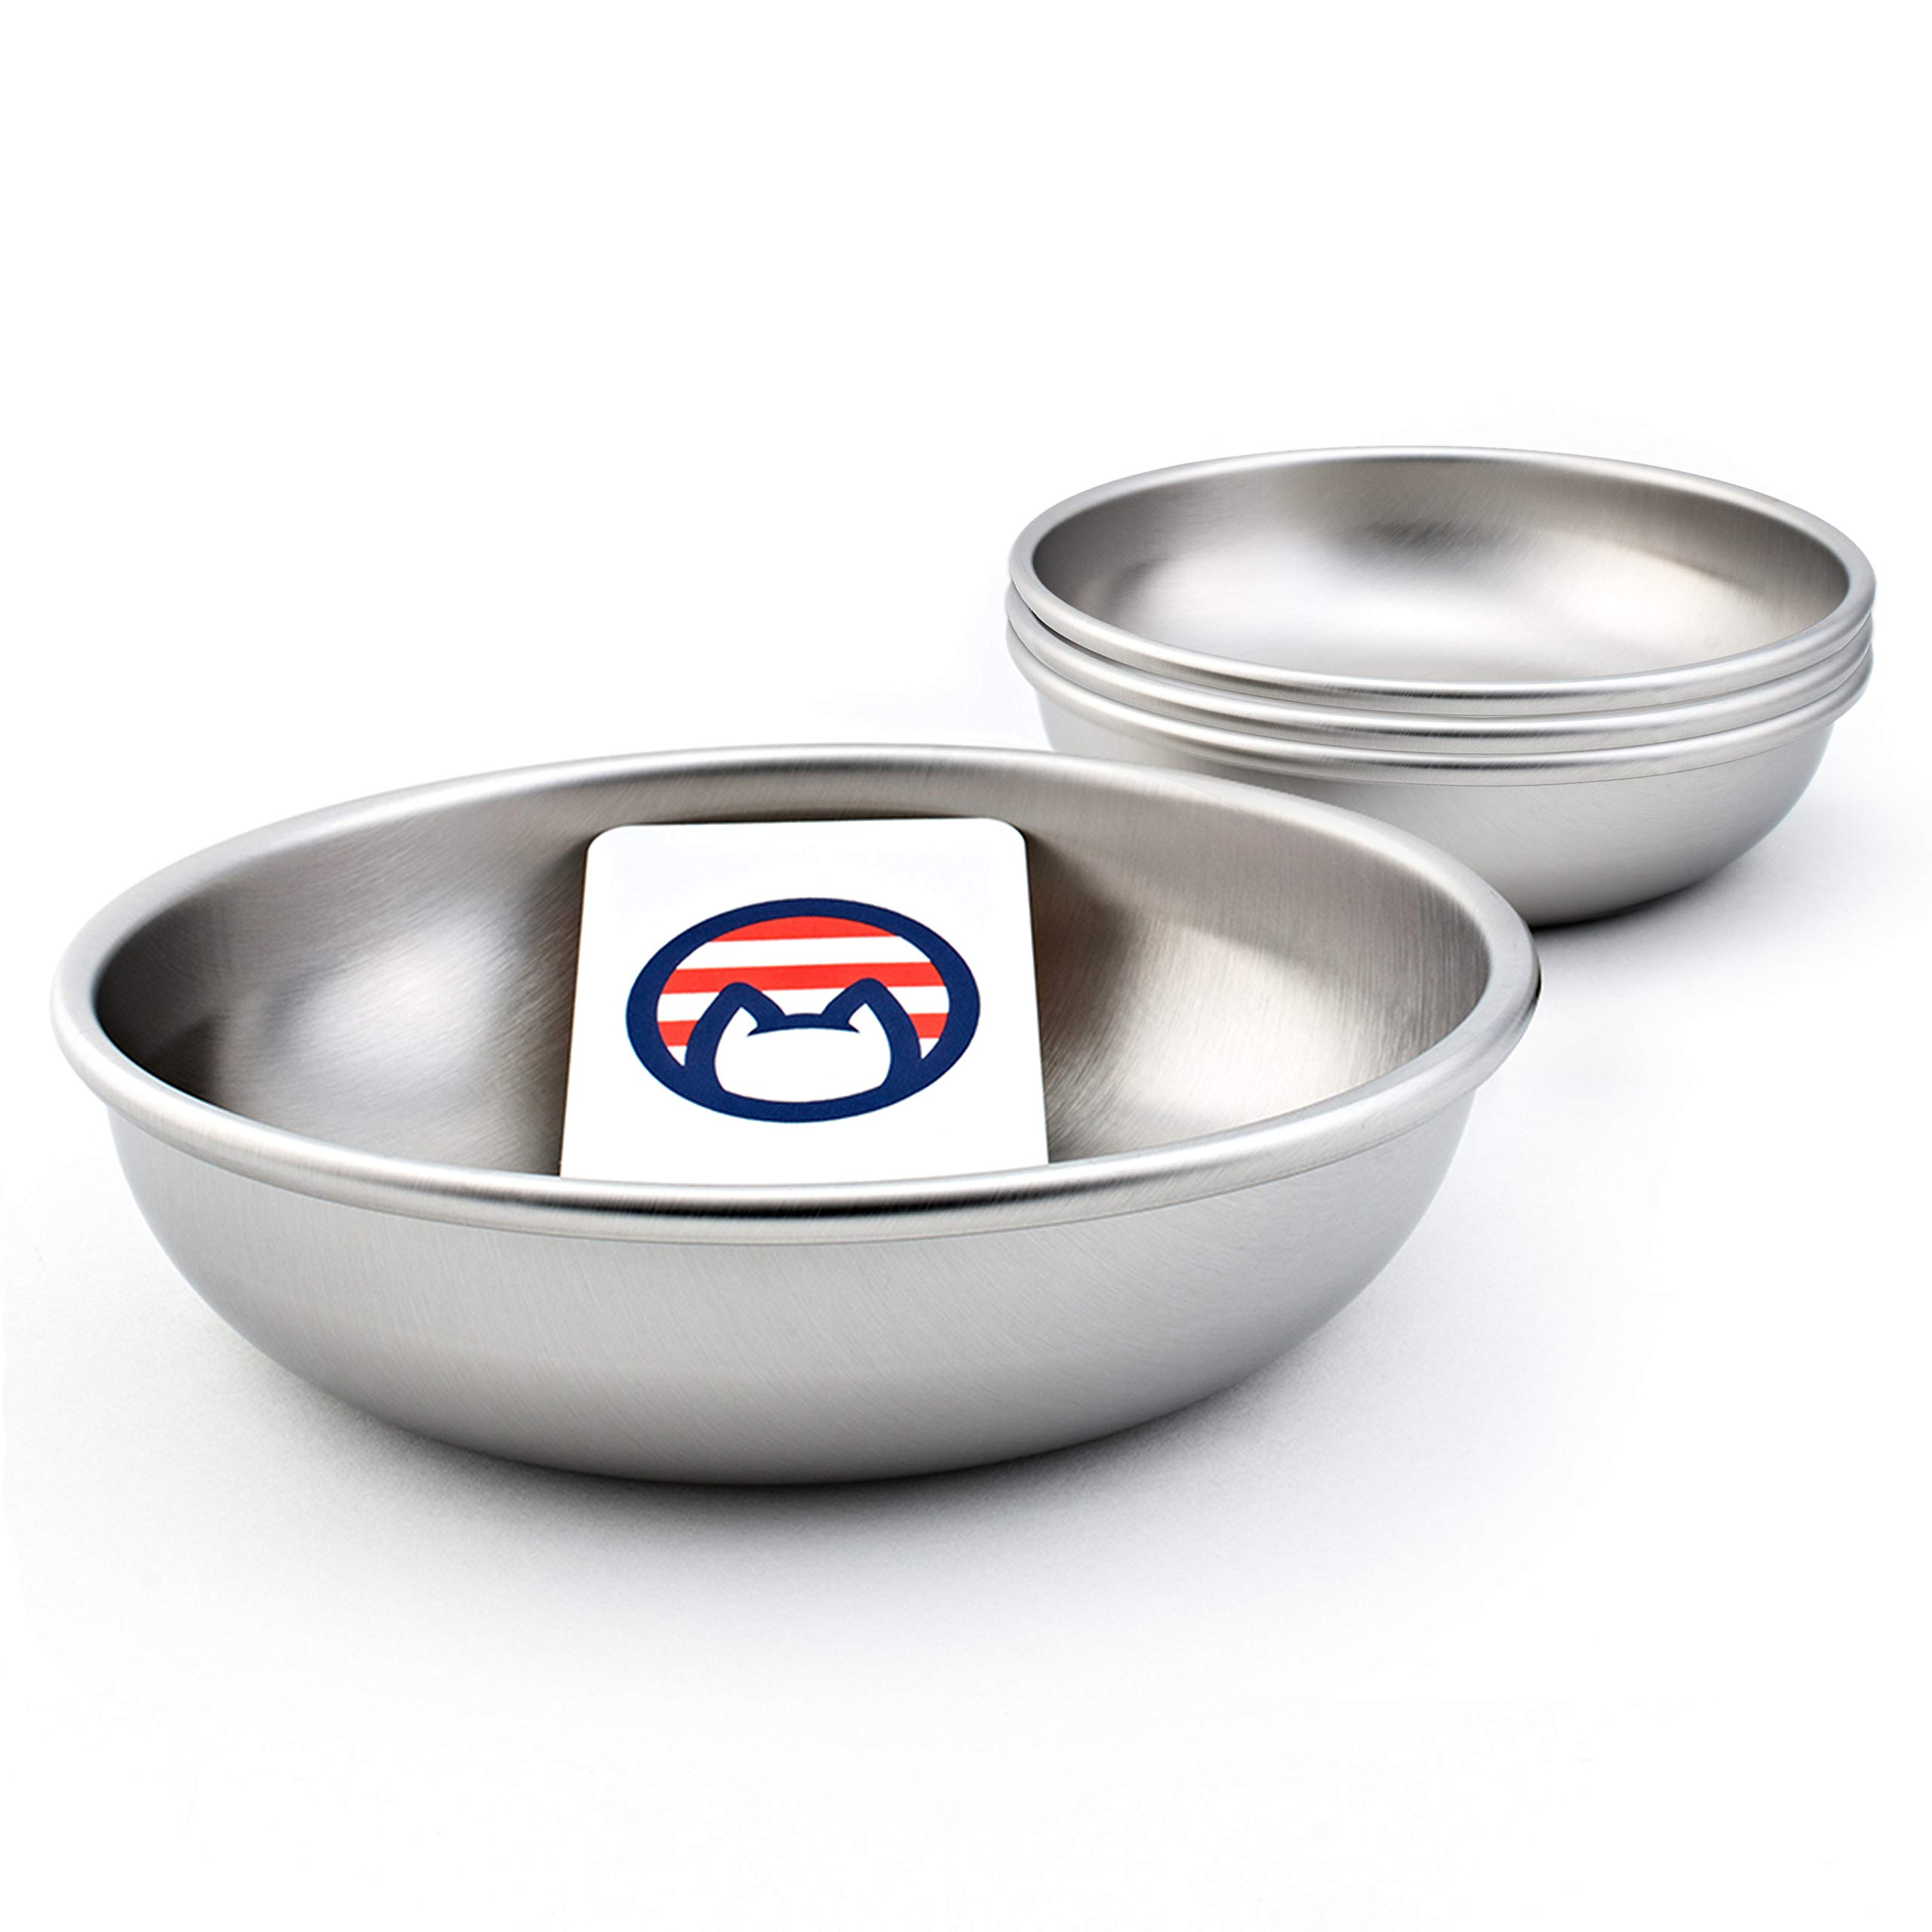 Americat Company Set of 4 Stainless Steel Cat Bowls - Made in The USA - Designed to Prevent Whisker Fatigue - Cat Food and Water Dishes (Set of 4) by Americat Company